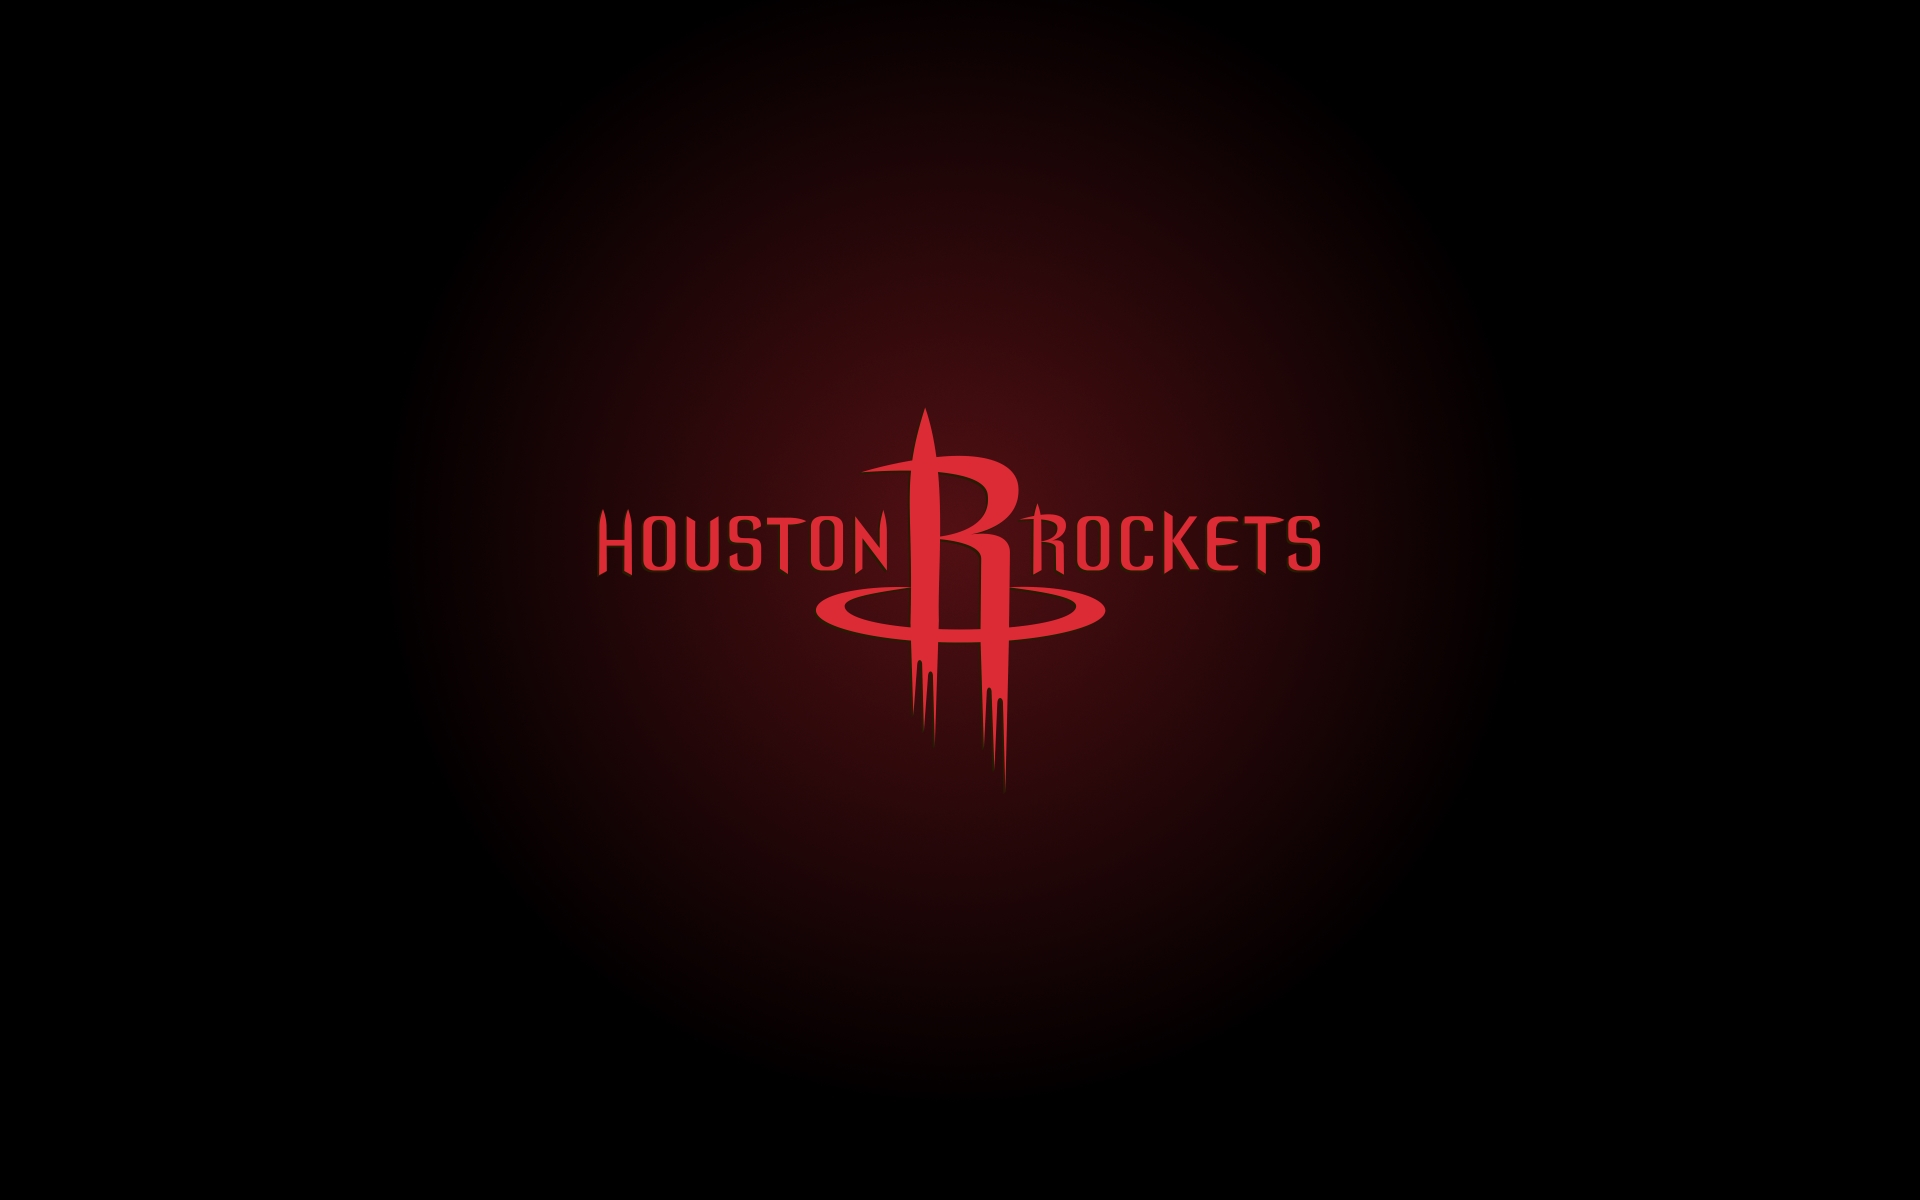 Dynamo Images Hd Wallpaper And Background Photos Auto Onkyo Eq25 Wiring Diagram Houston Rockets U2013 Logos Download